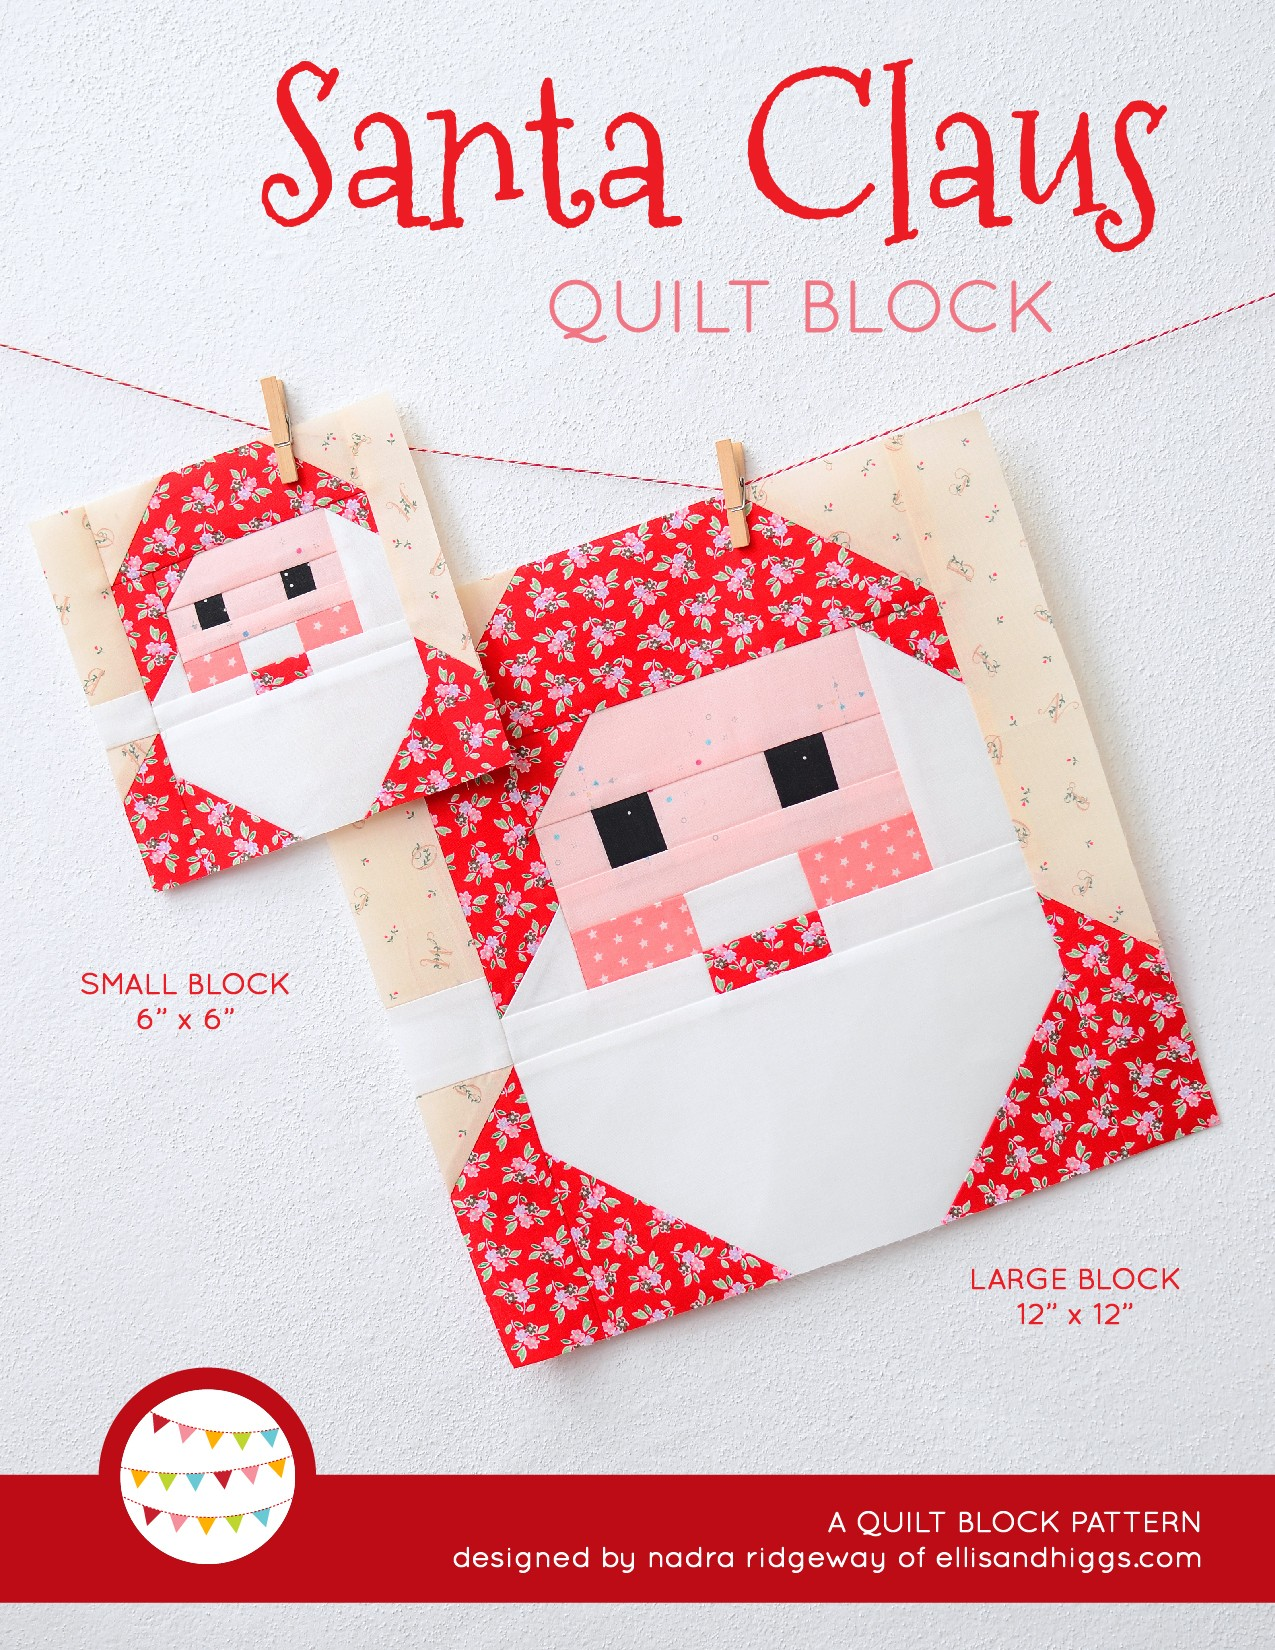 Santa Claus quilt block in two sizes hanging on a wall